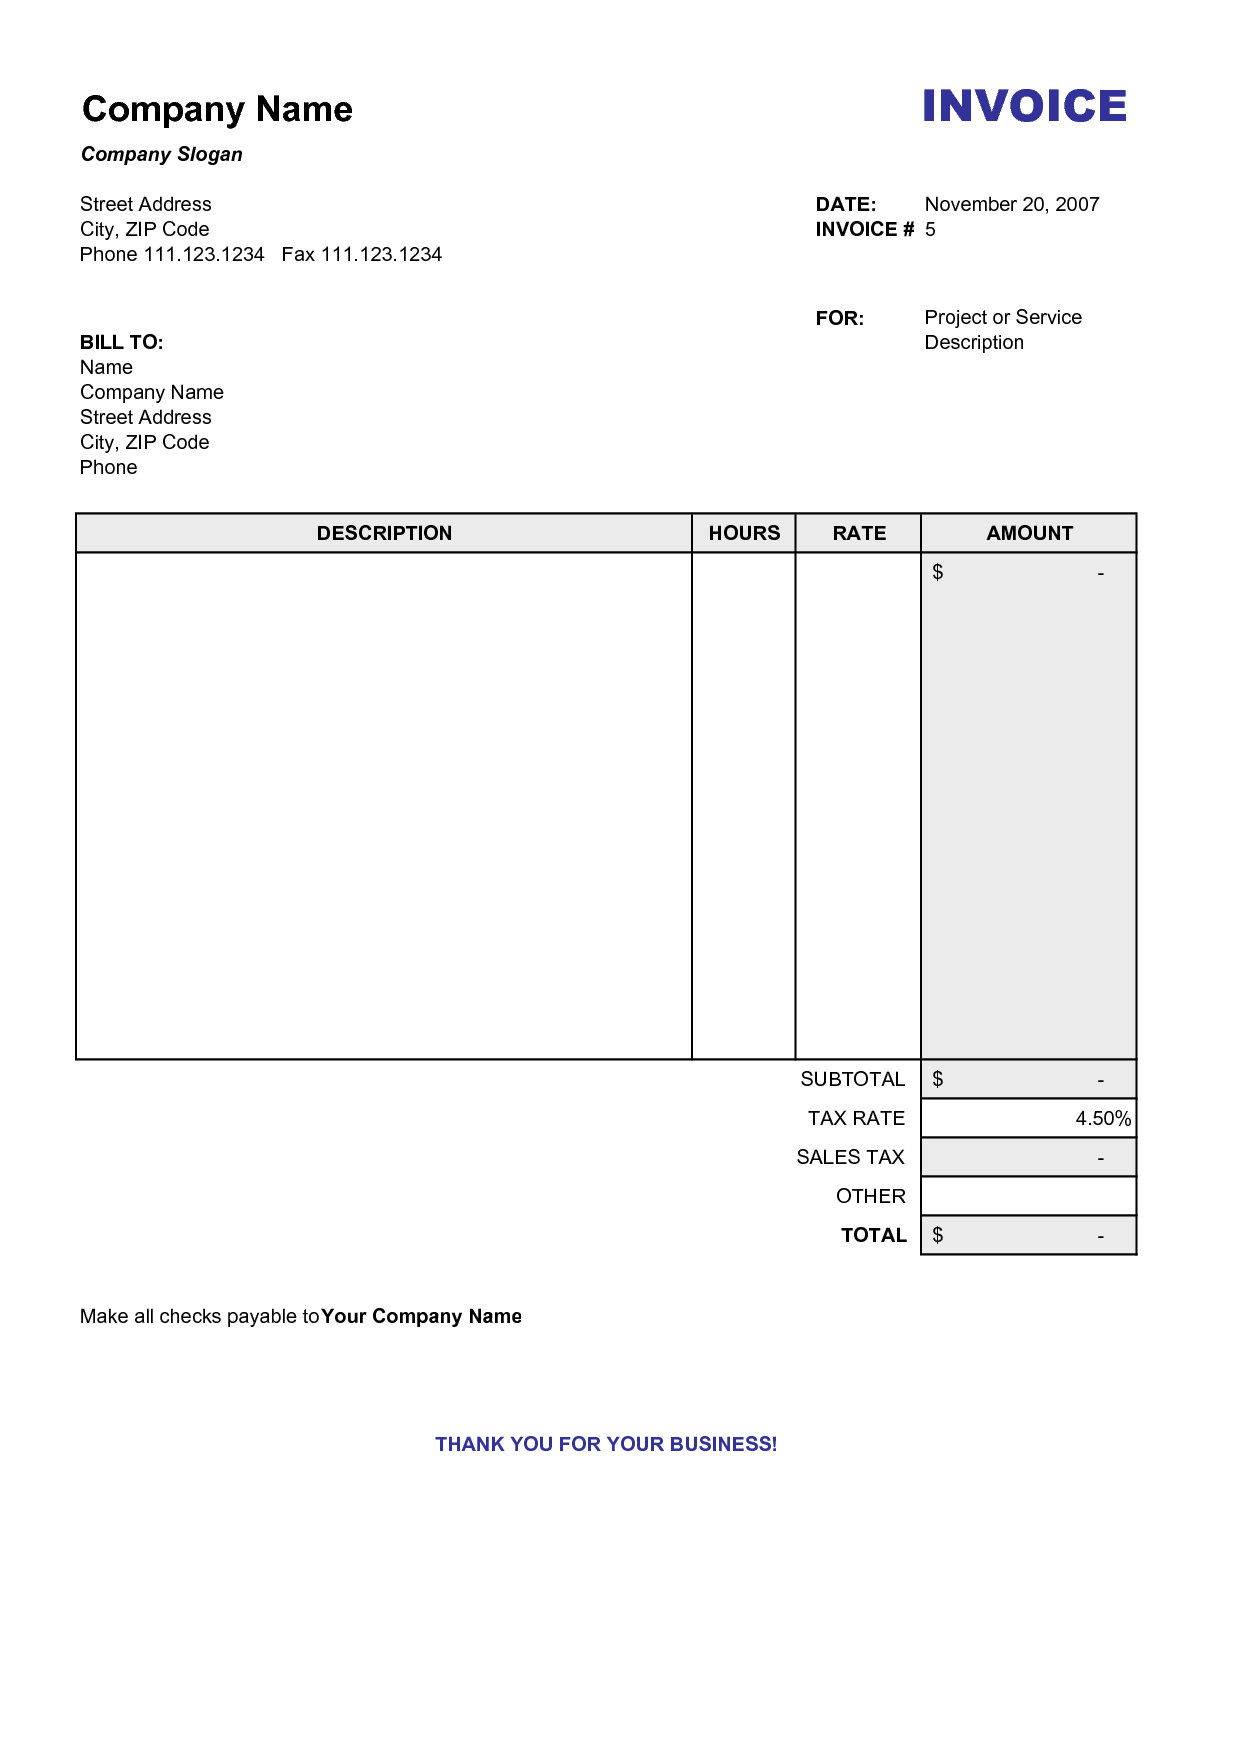 Samples Of Invoices for Services and Blank Billing Invoice Scope Of Work Template organization